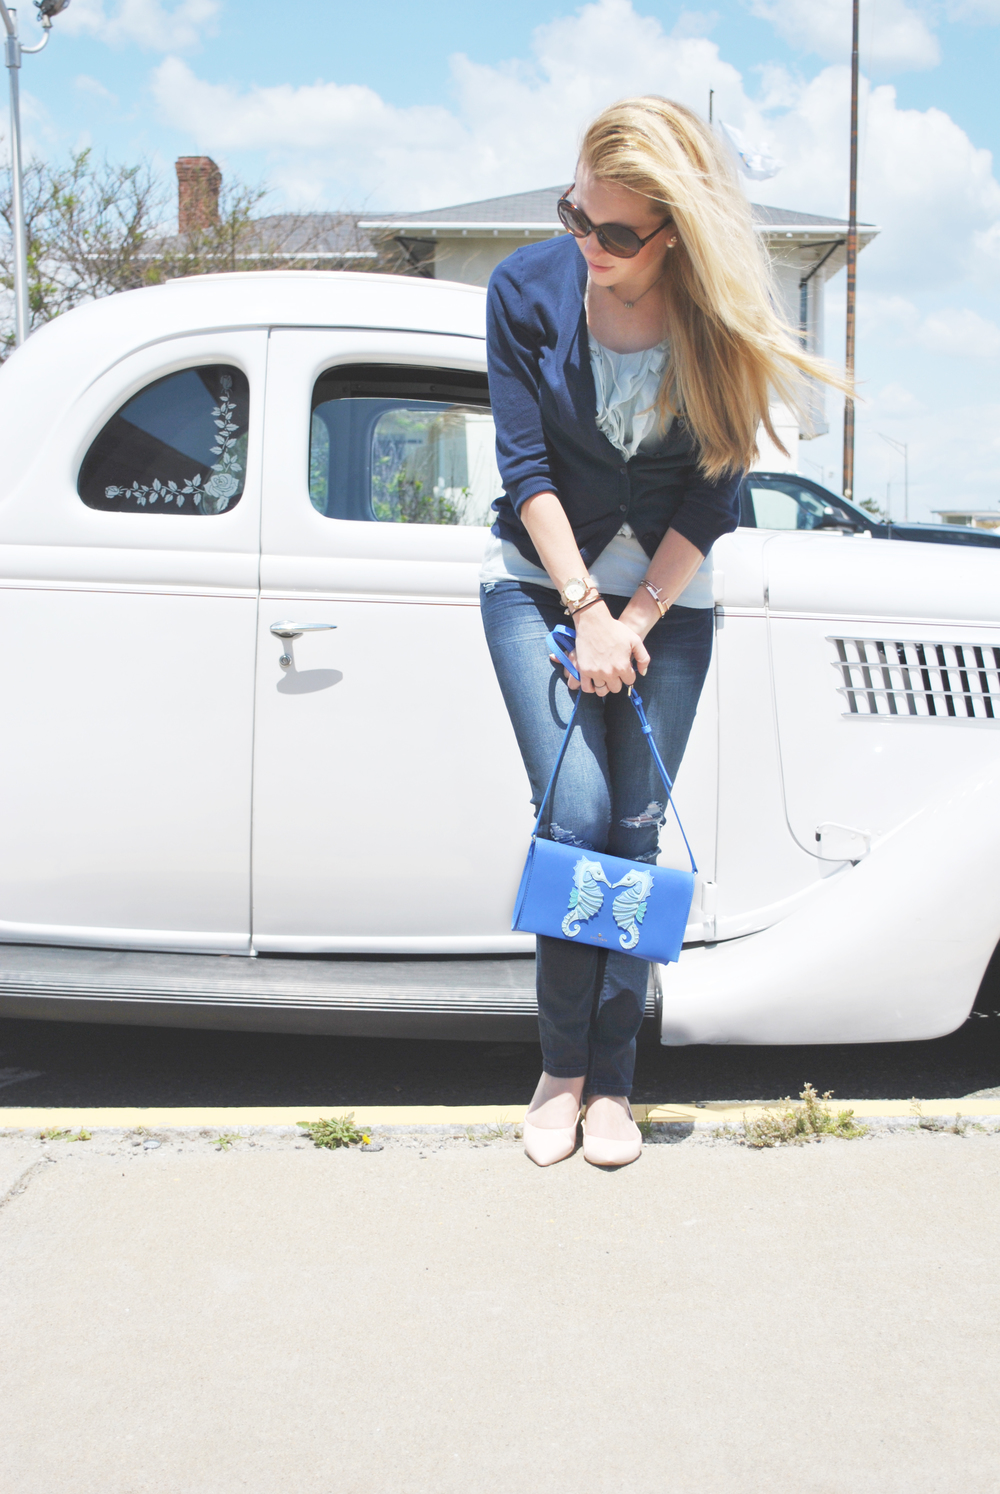 thoughtfulwish | ann taylor // loft // boston fashion // boston // fashion blogger // preppy outfit // summer outfit // kate spade // seahorse bag // meredith wish // blue outfit